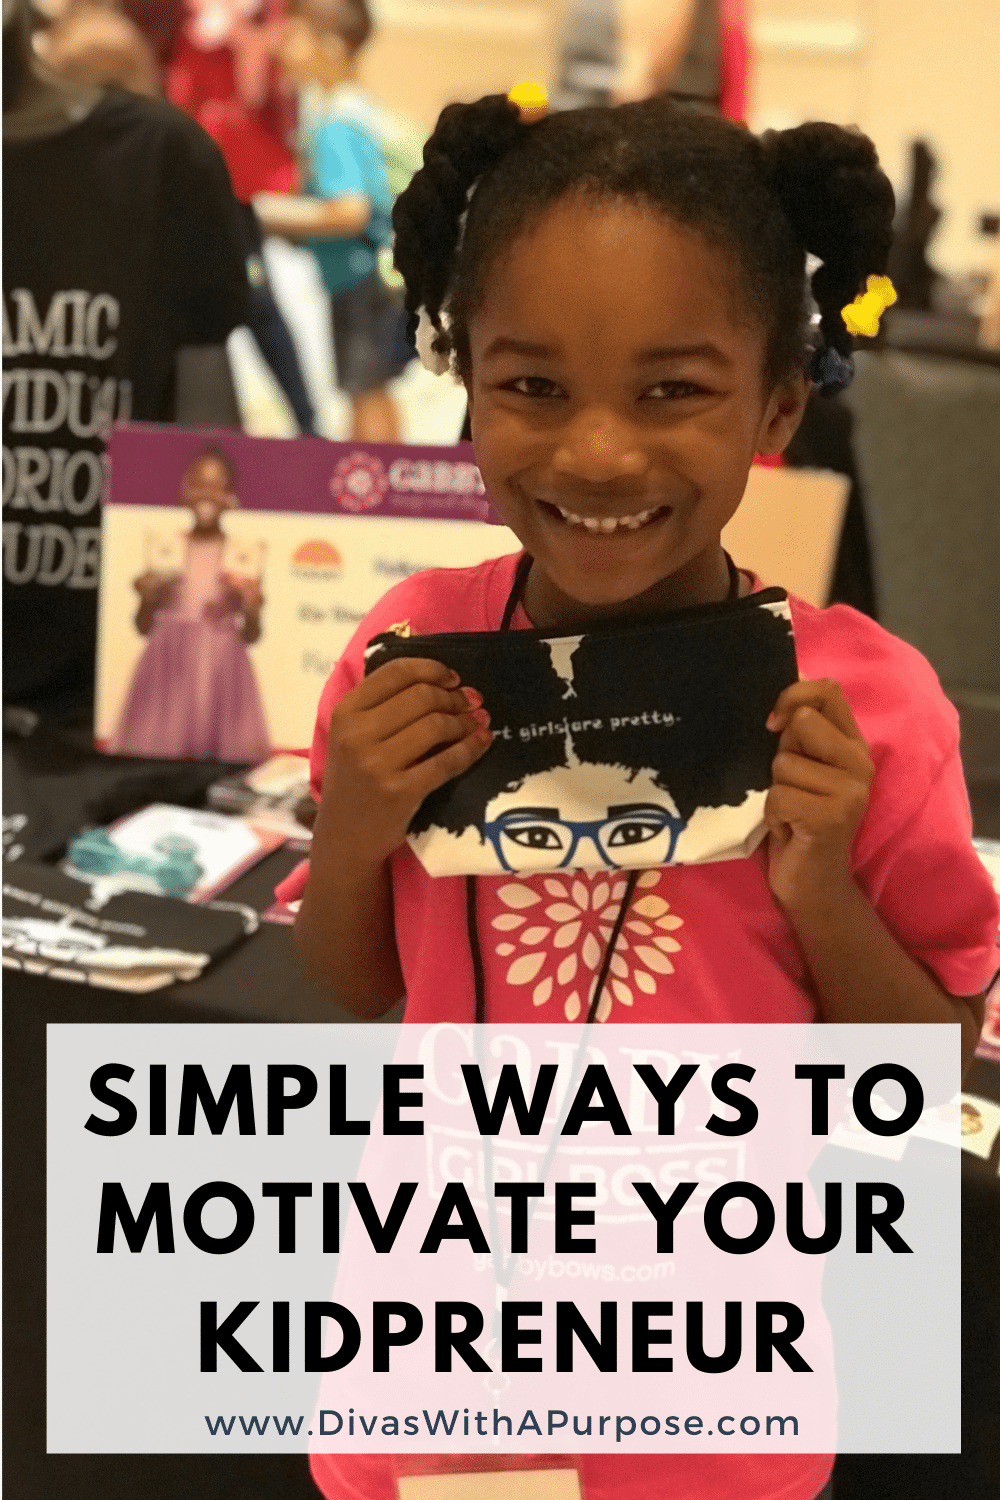 Are you looking for simple ways to motivate your kidpreneur? Often times our young entrepreneurs can get overwhelmed by the demands of running and showing up in their business.